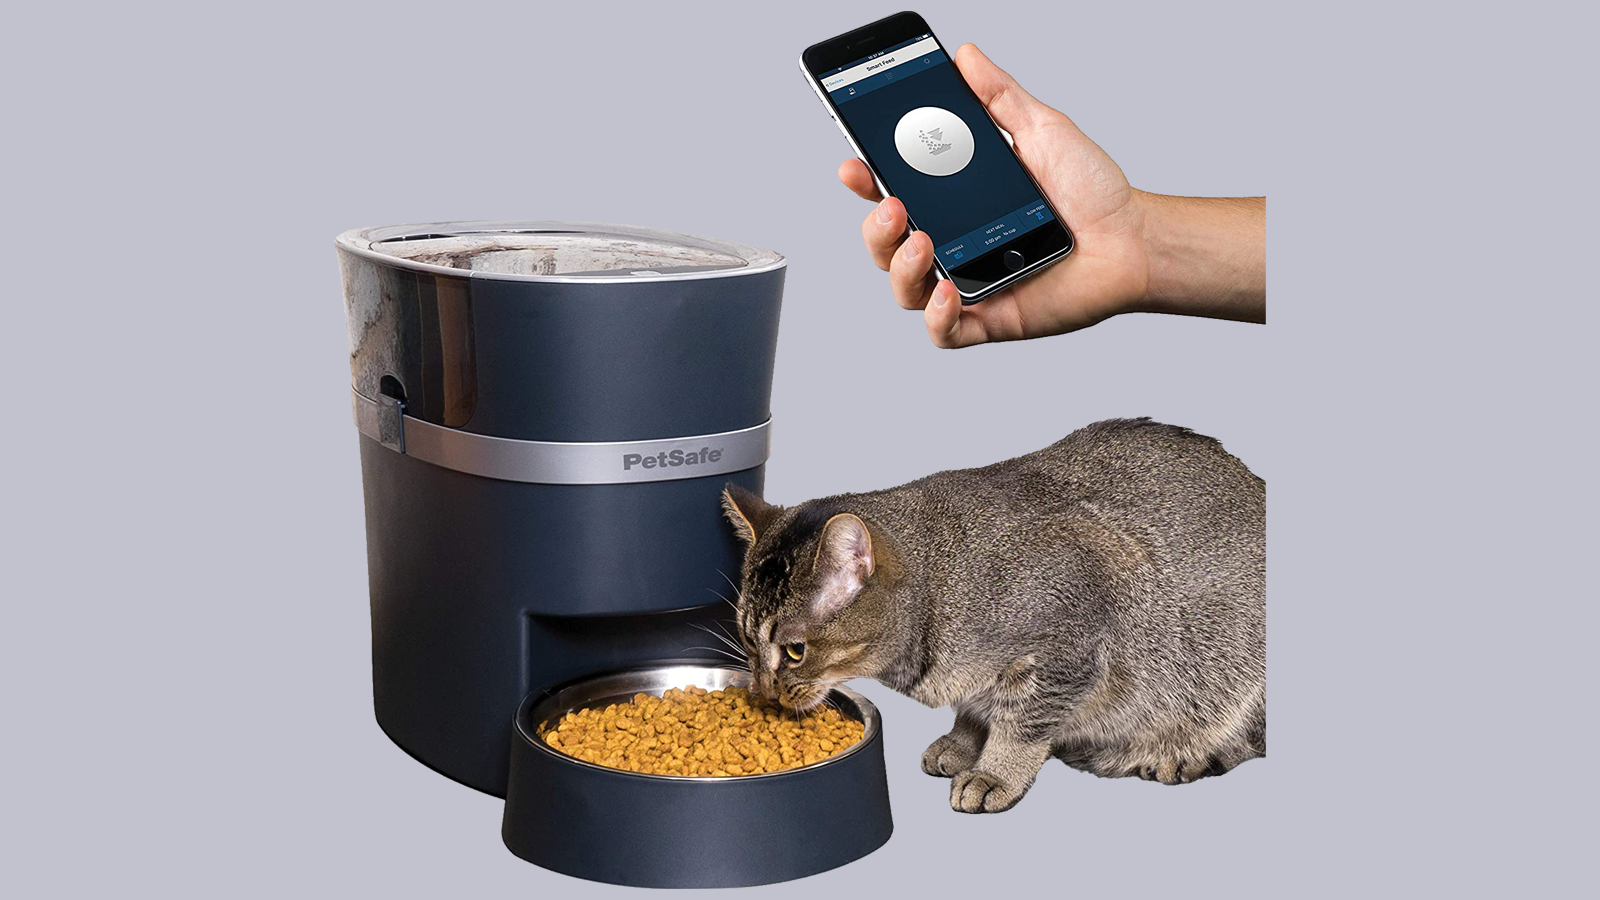 PetSafe Smart Feed Pet Feeder with cat eating and a floating hand holding a smartphone with the companion app open